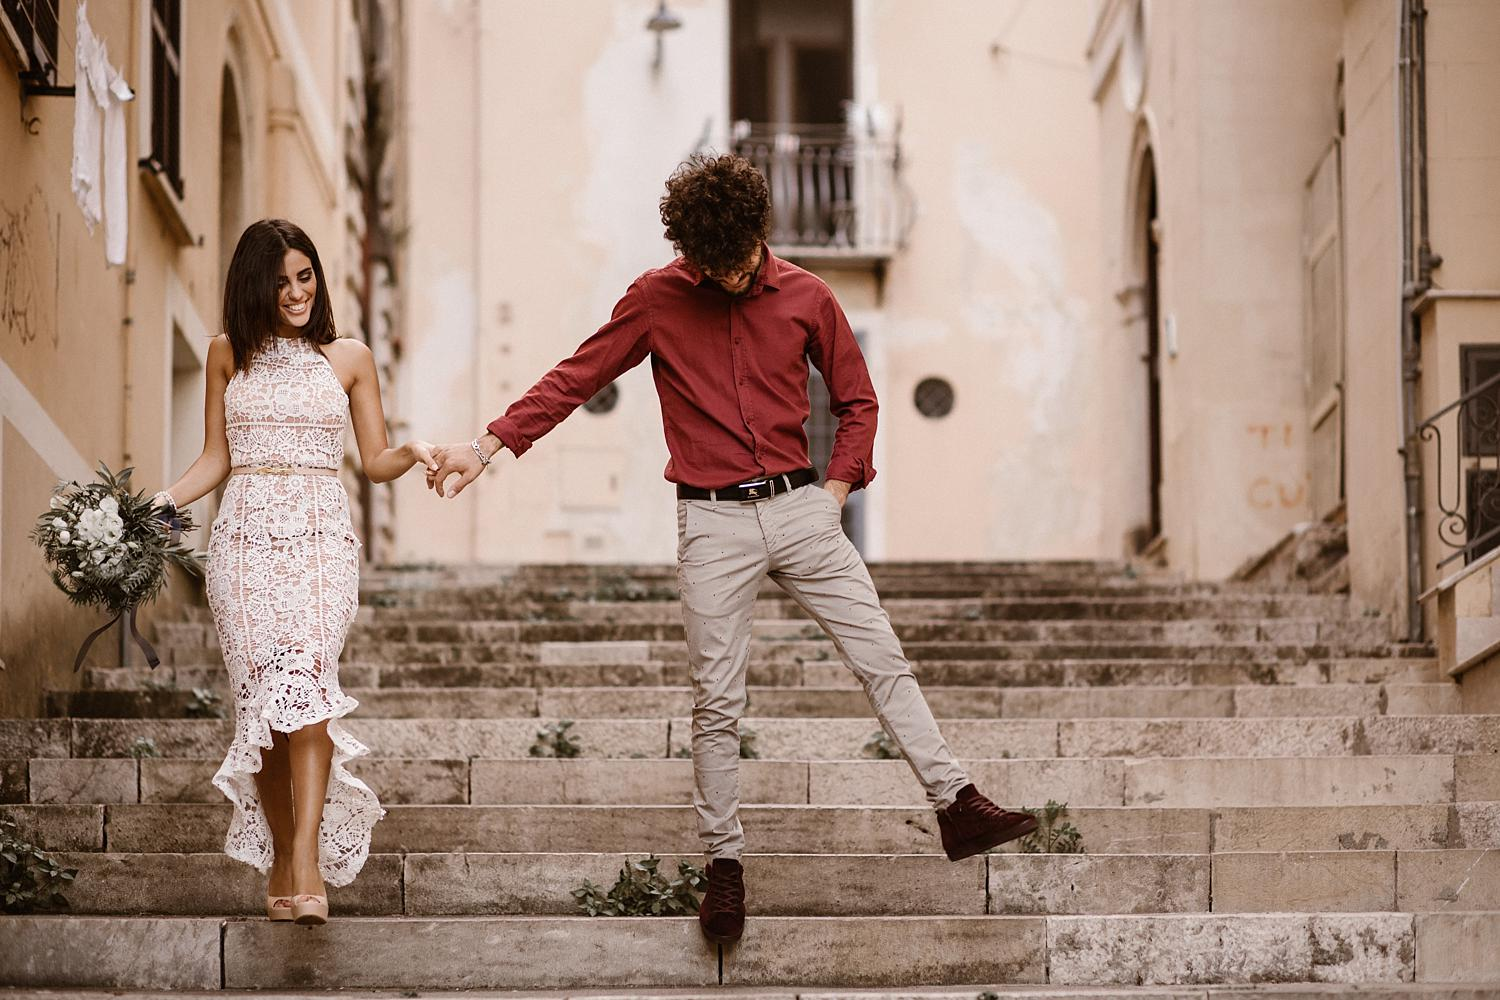 mf weddingphotographer rome 43 - Marika & Franklin - Intimate Session in Gaeta